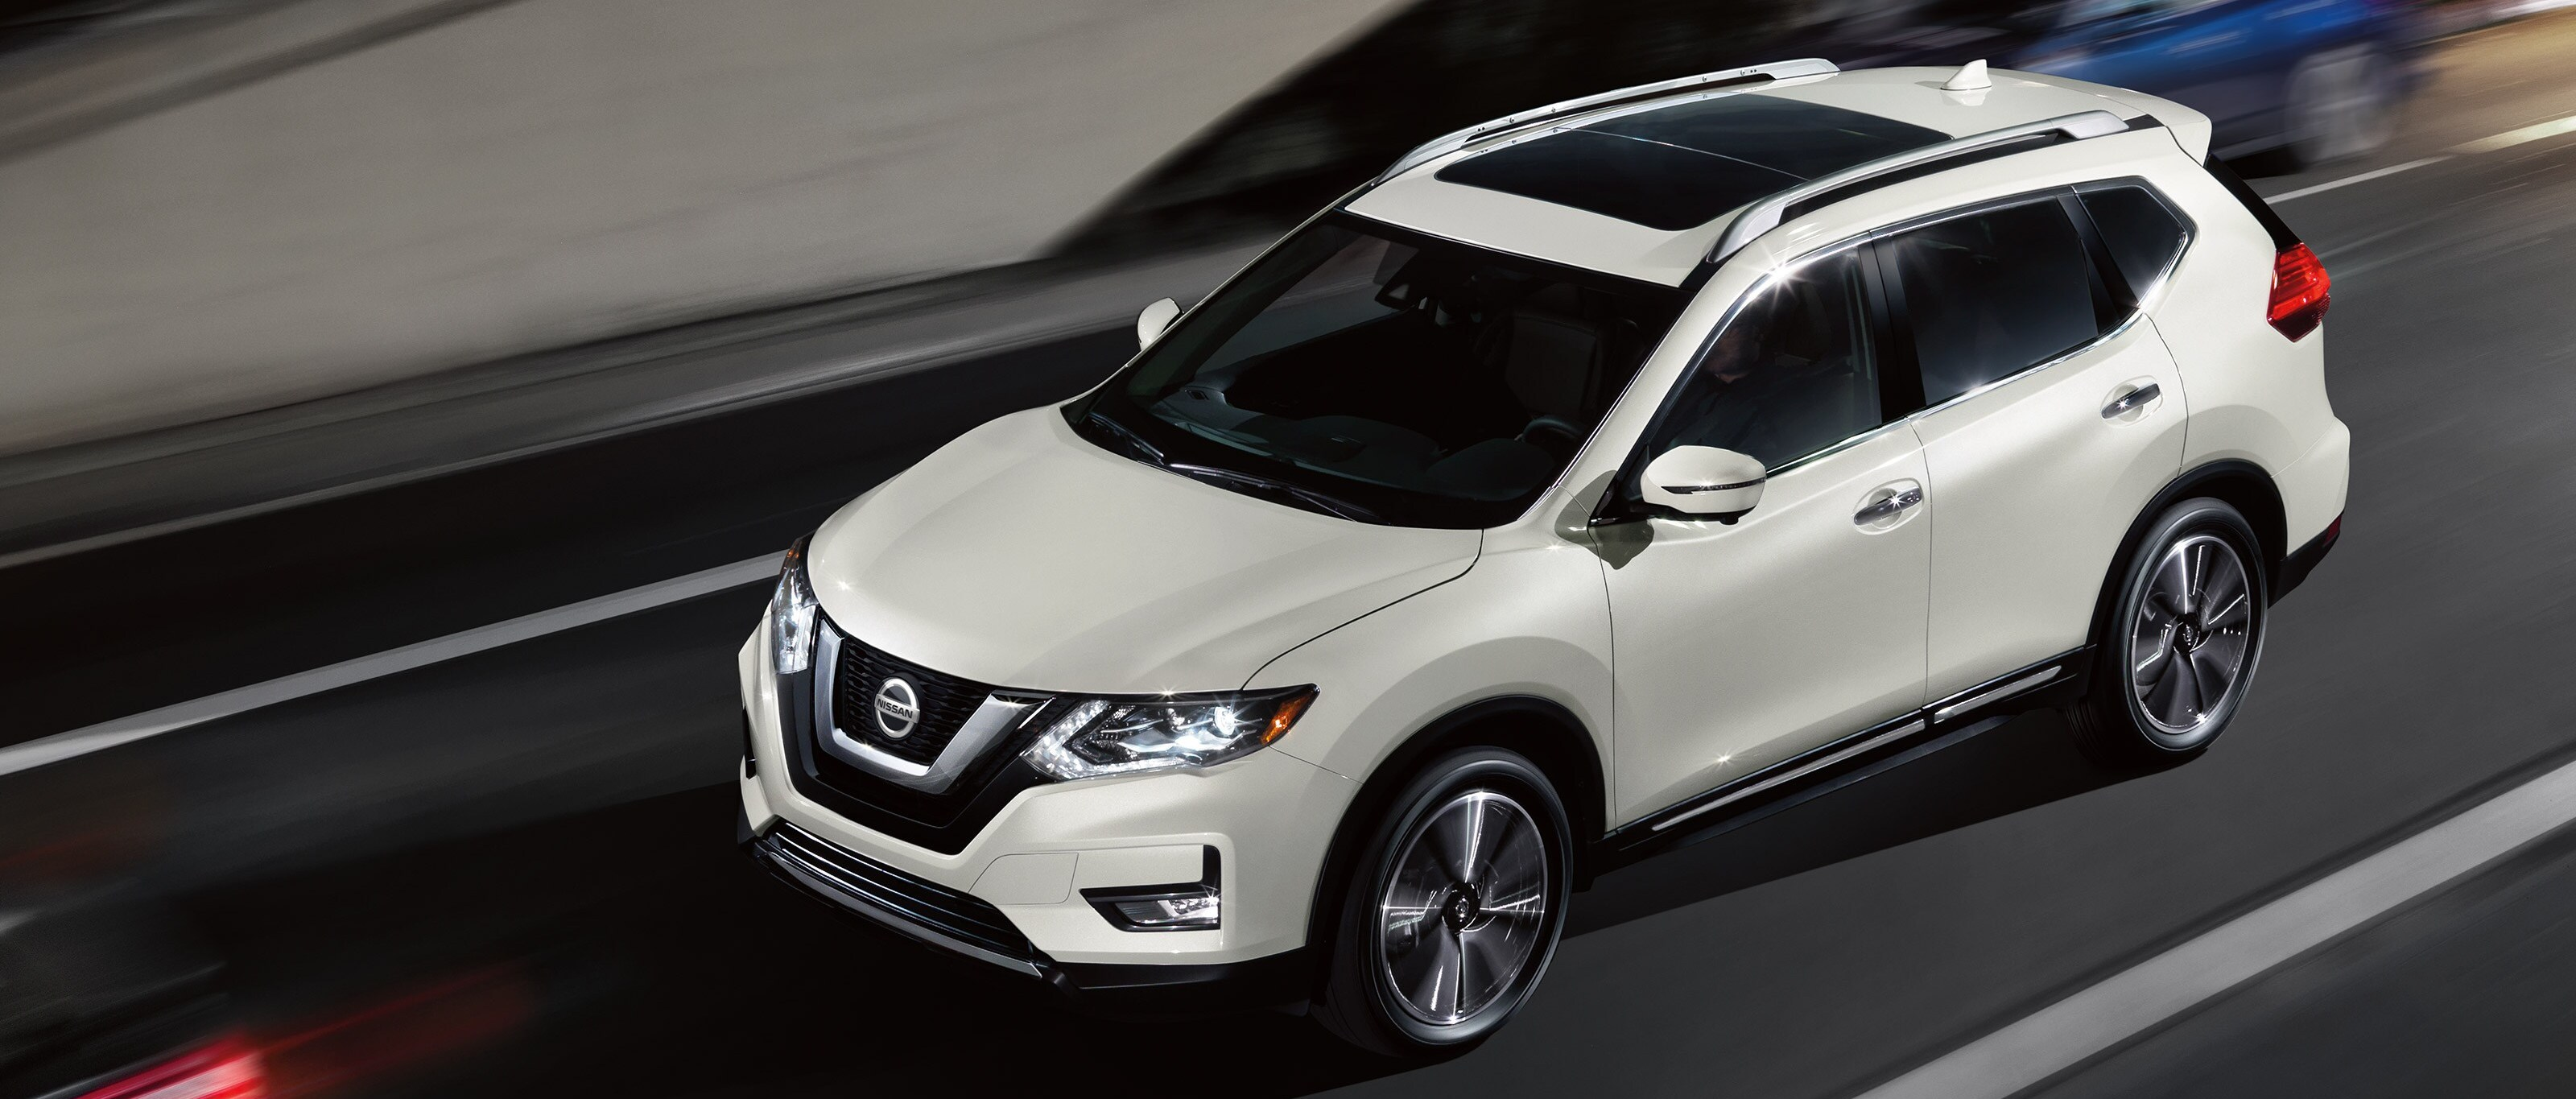 2020 Nissan Rogue Trim Levels near Marlborough, MA